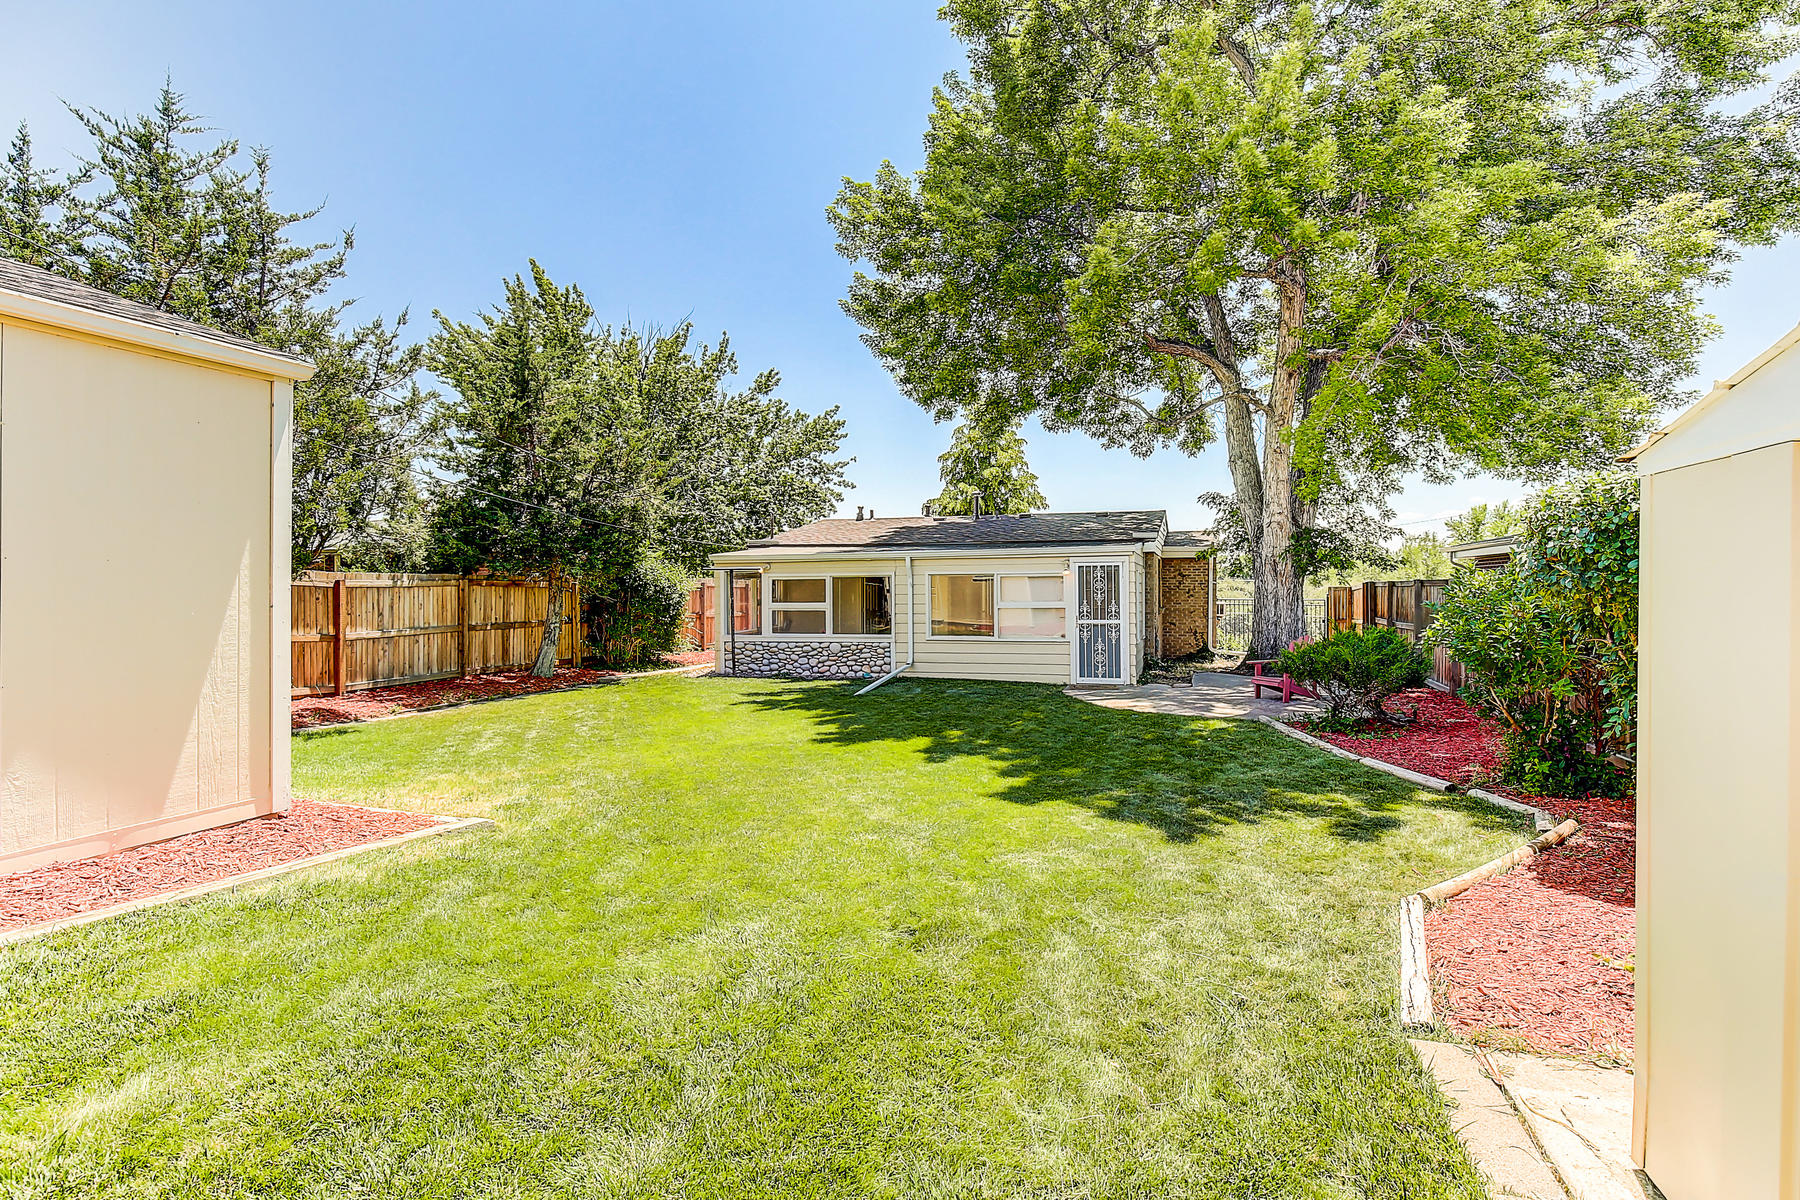 7315 Richthofen Pl Denver CO-034-39-33-MLS_Size.jpg